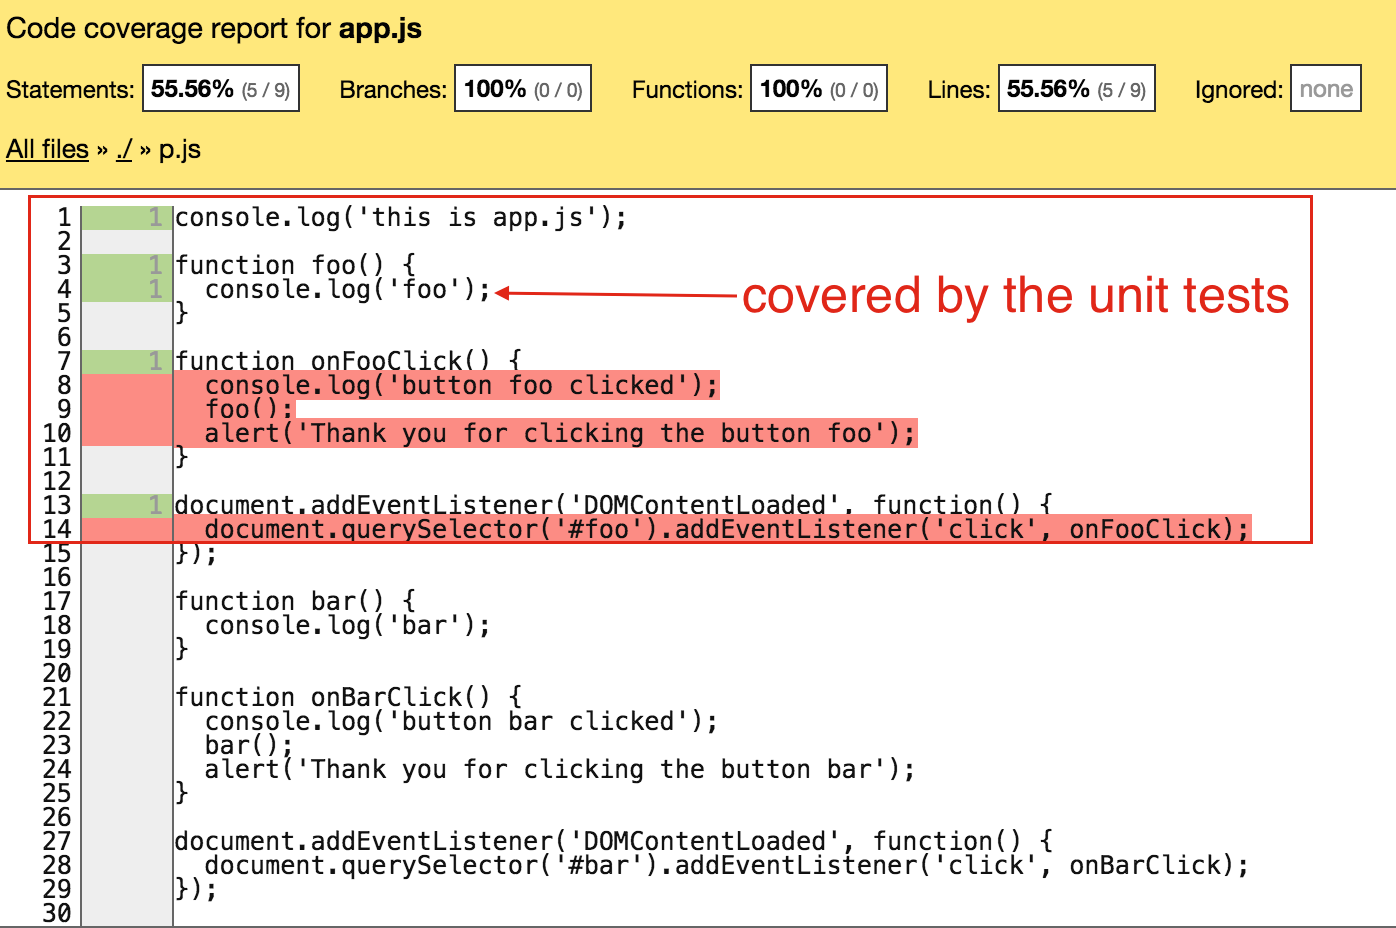 foo covered by unit tests